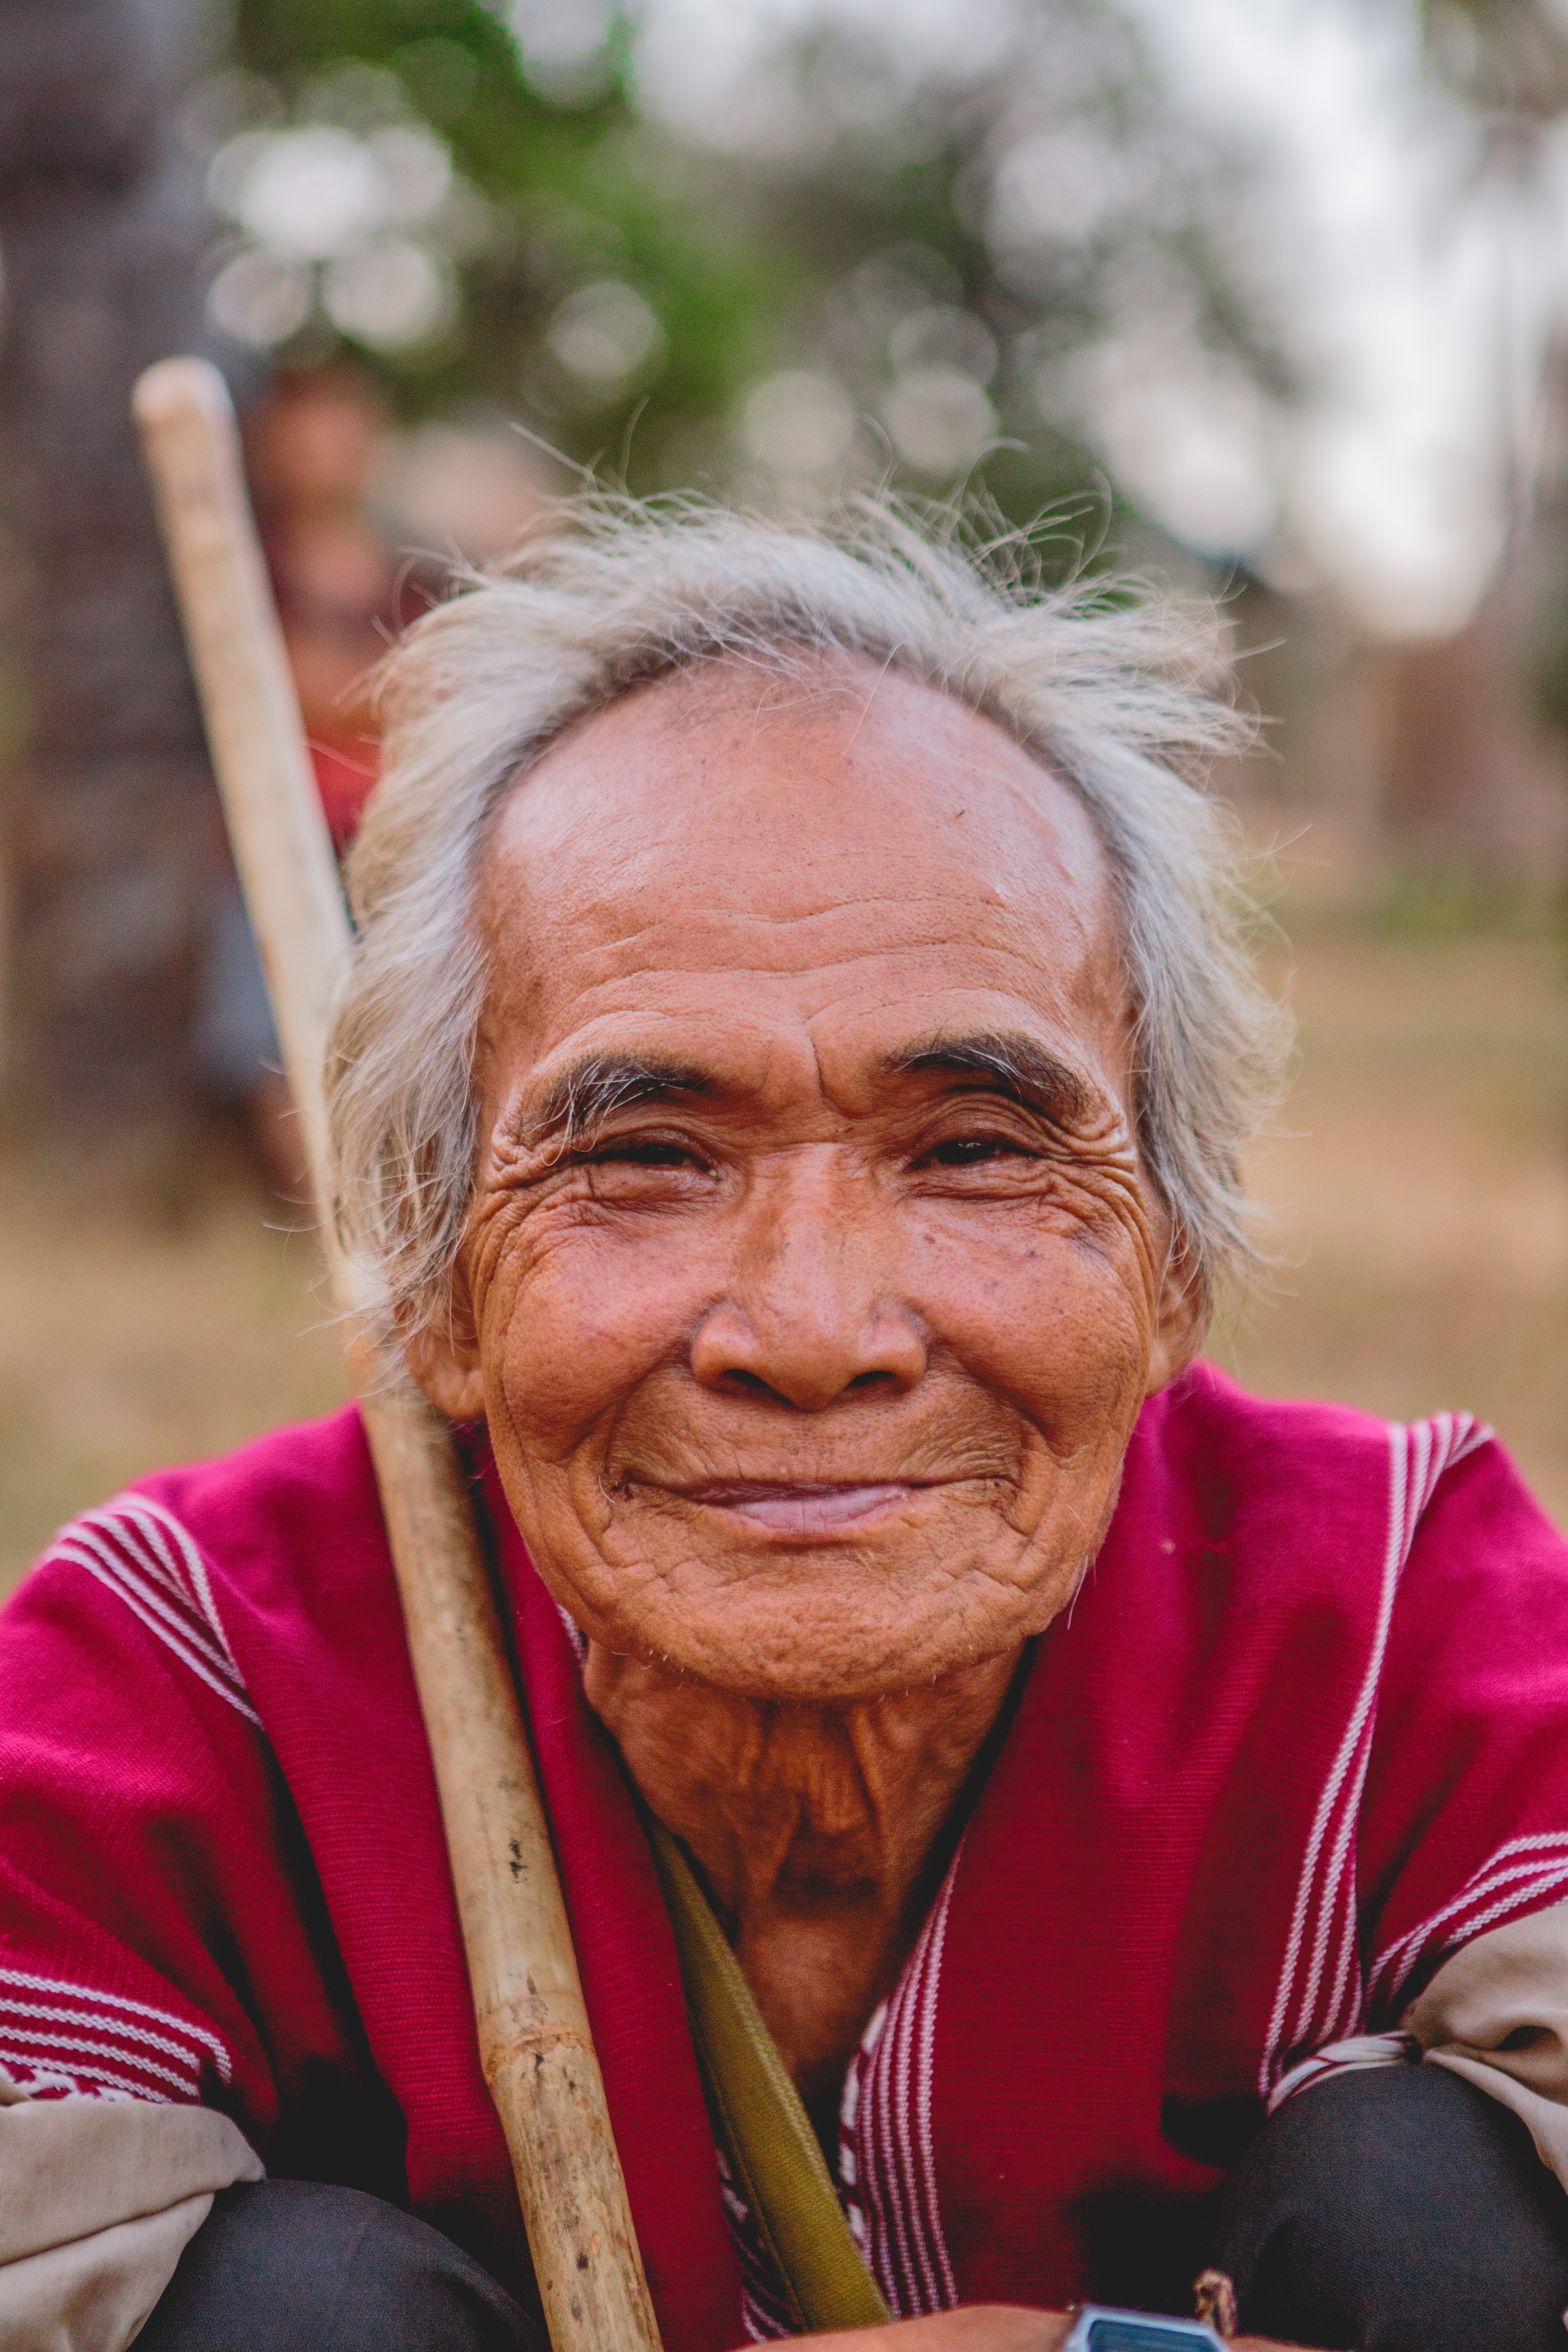 A portrait of a wrinkled elderly man smiling at the camera while holding a walking stick.